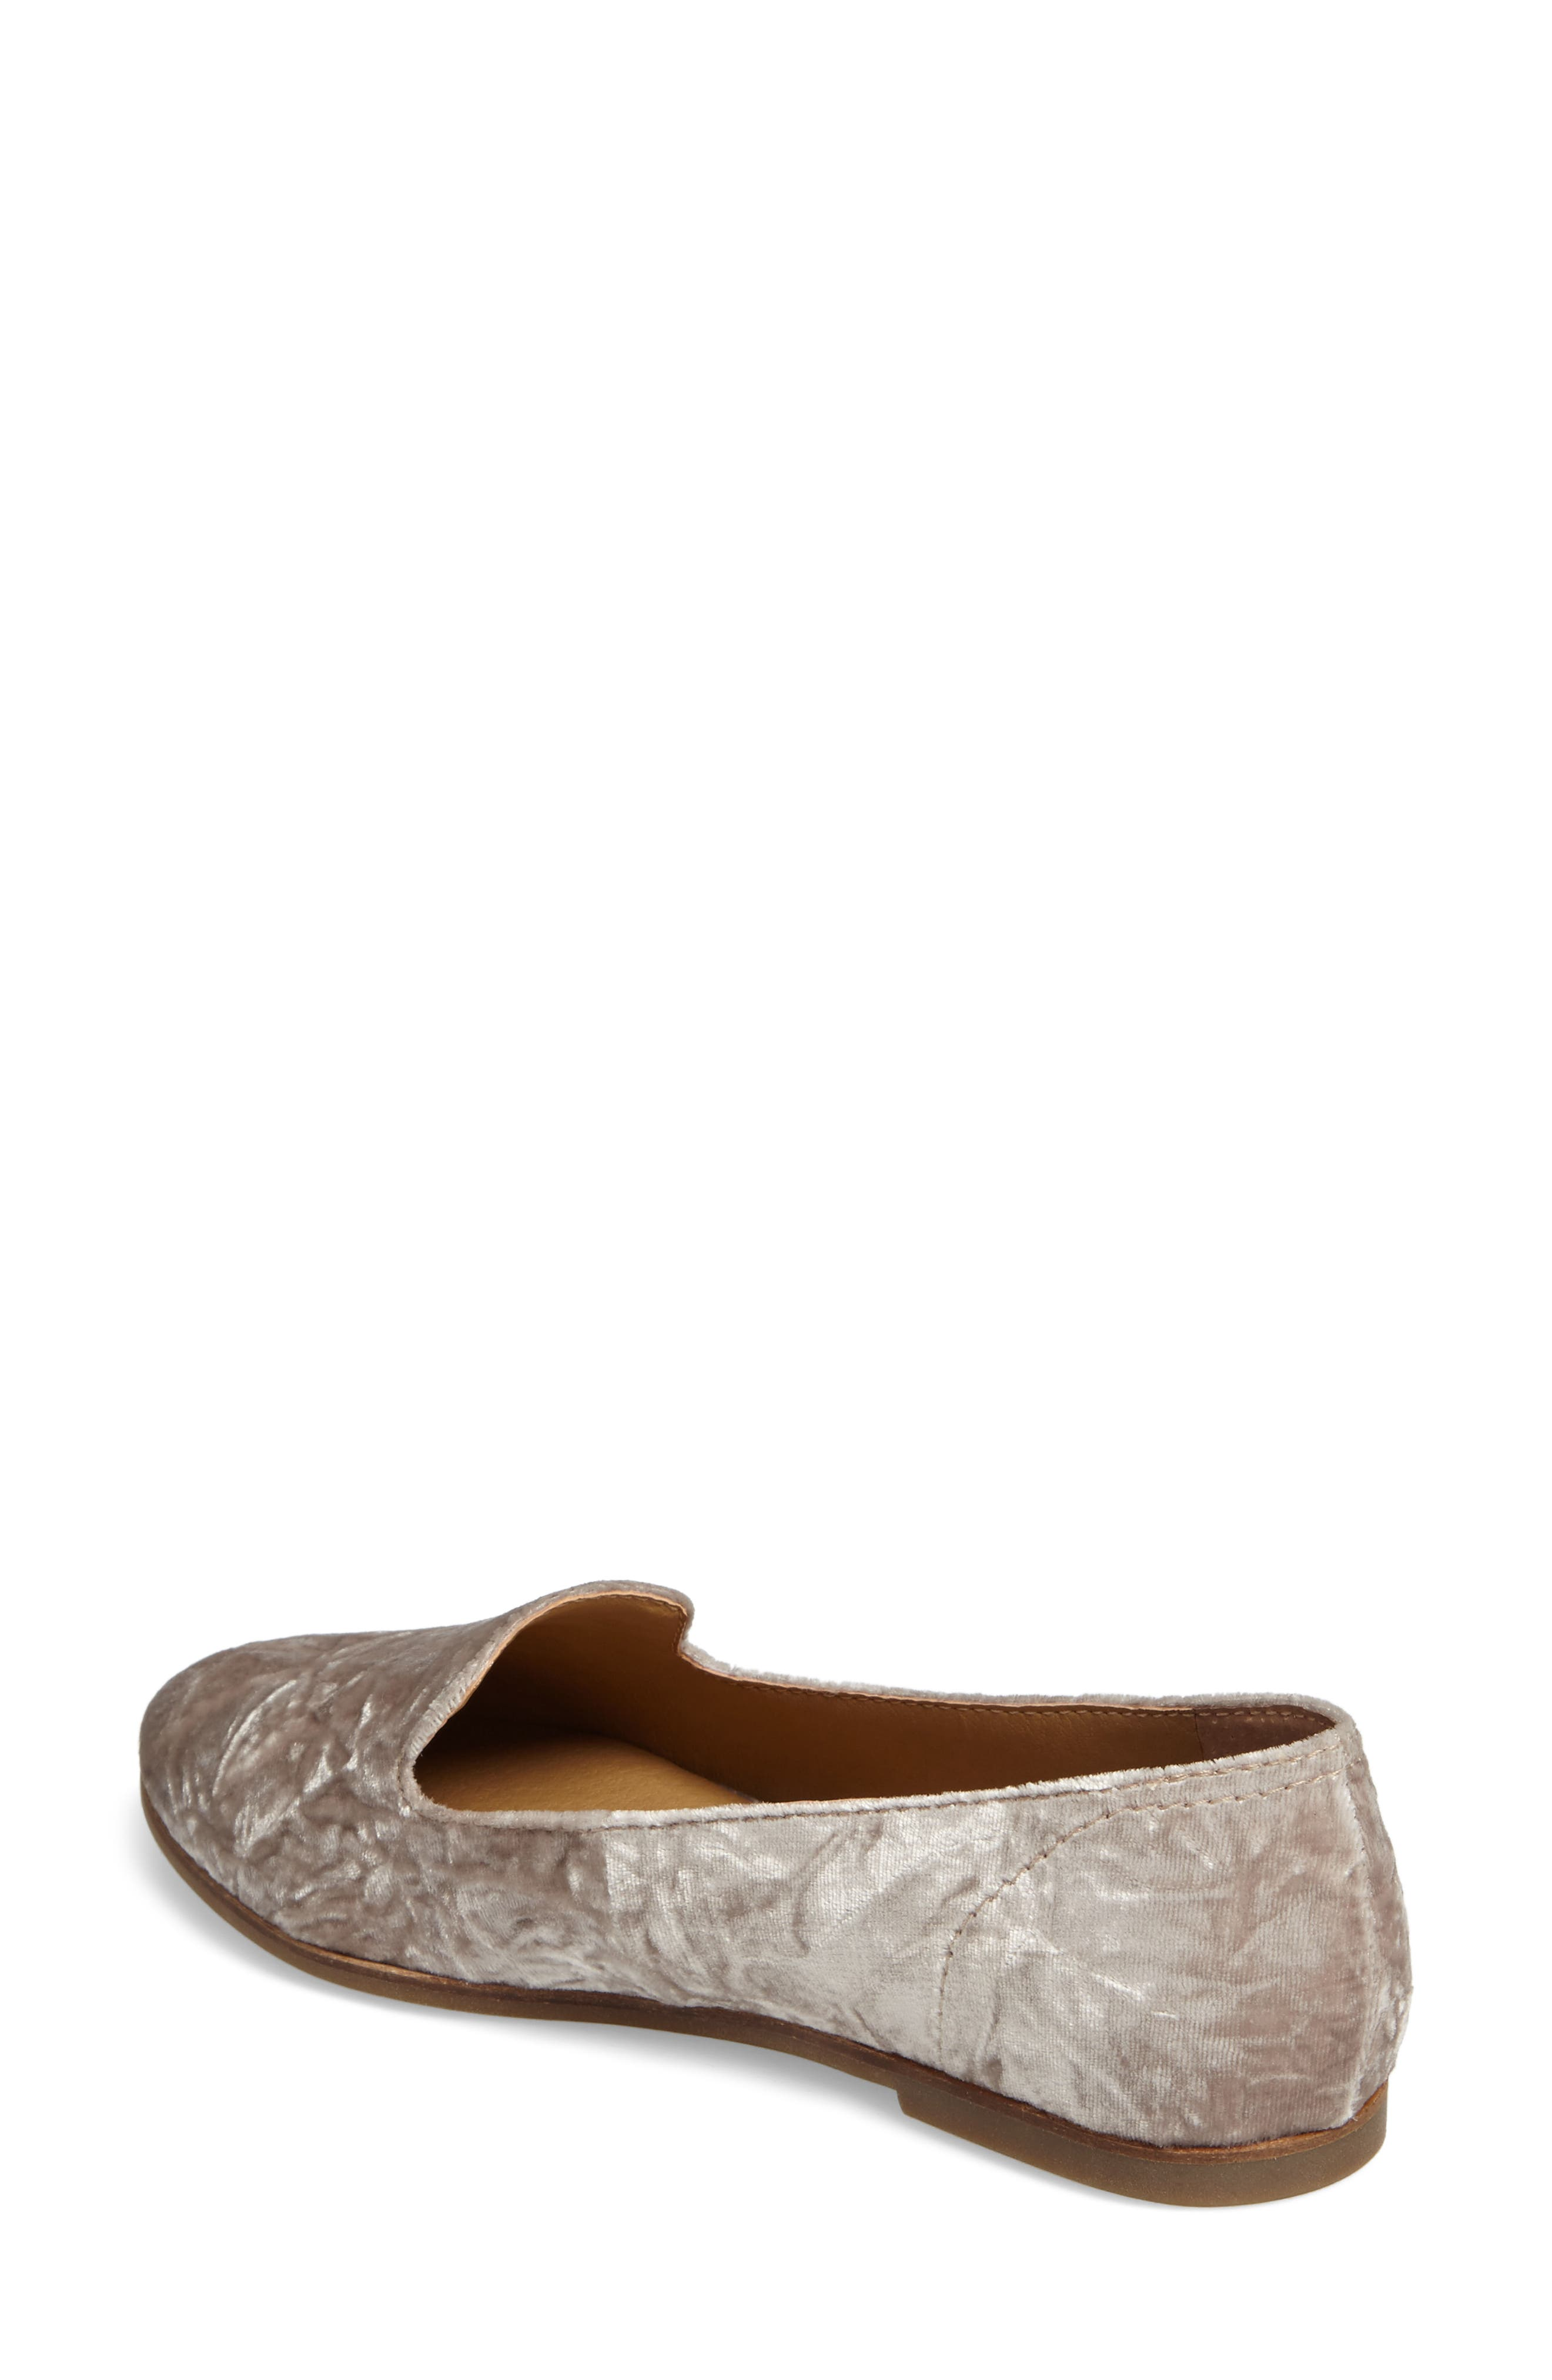 Carlyn Loafer Flat,                             Alternate thumbnail 7, color,